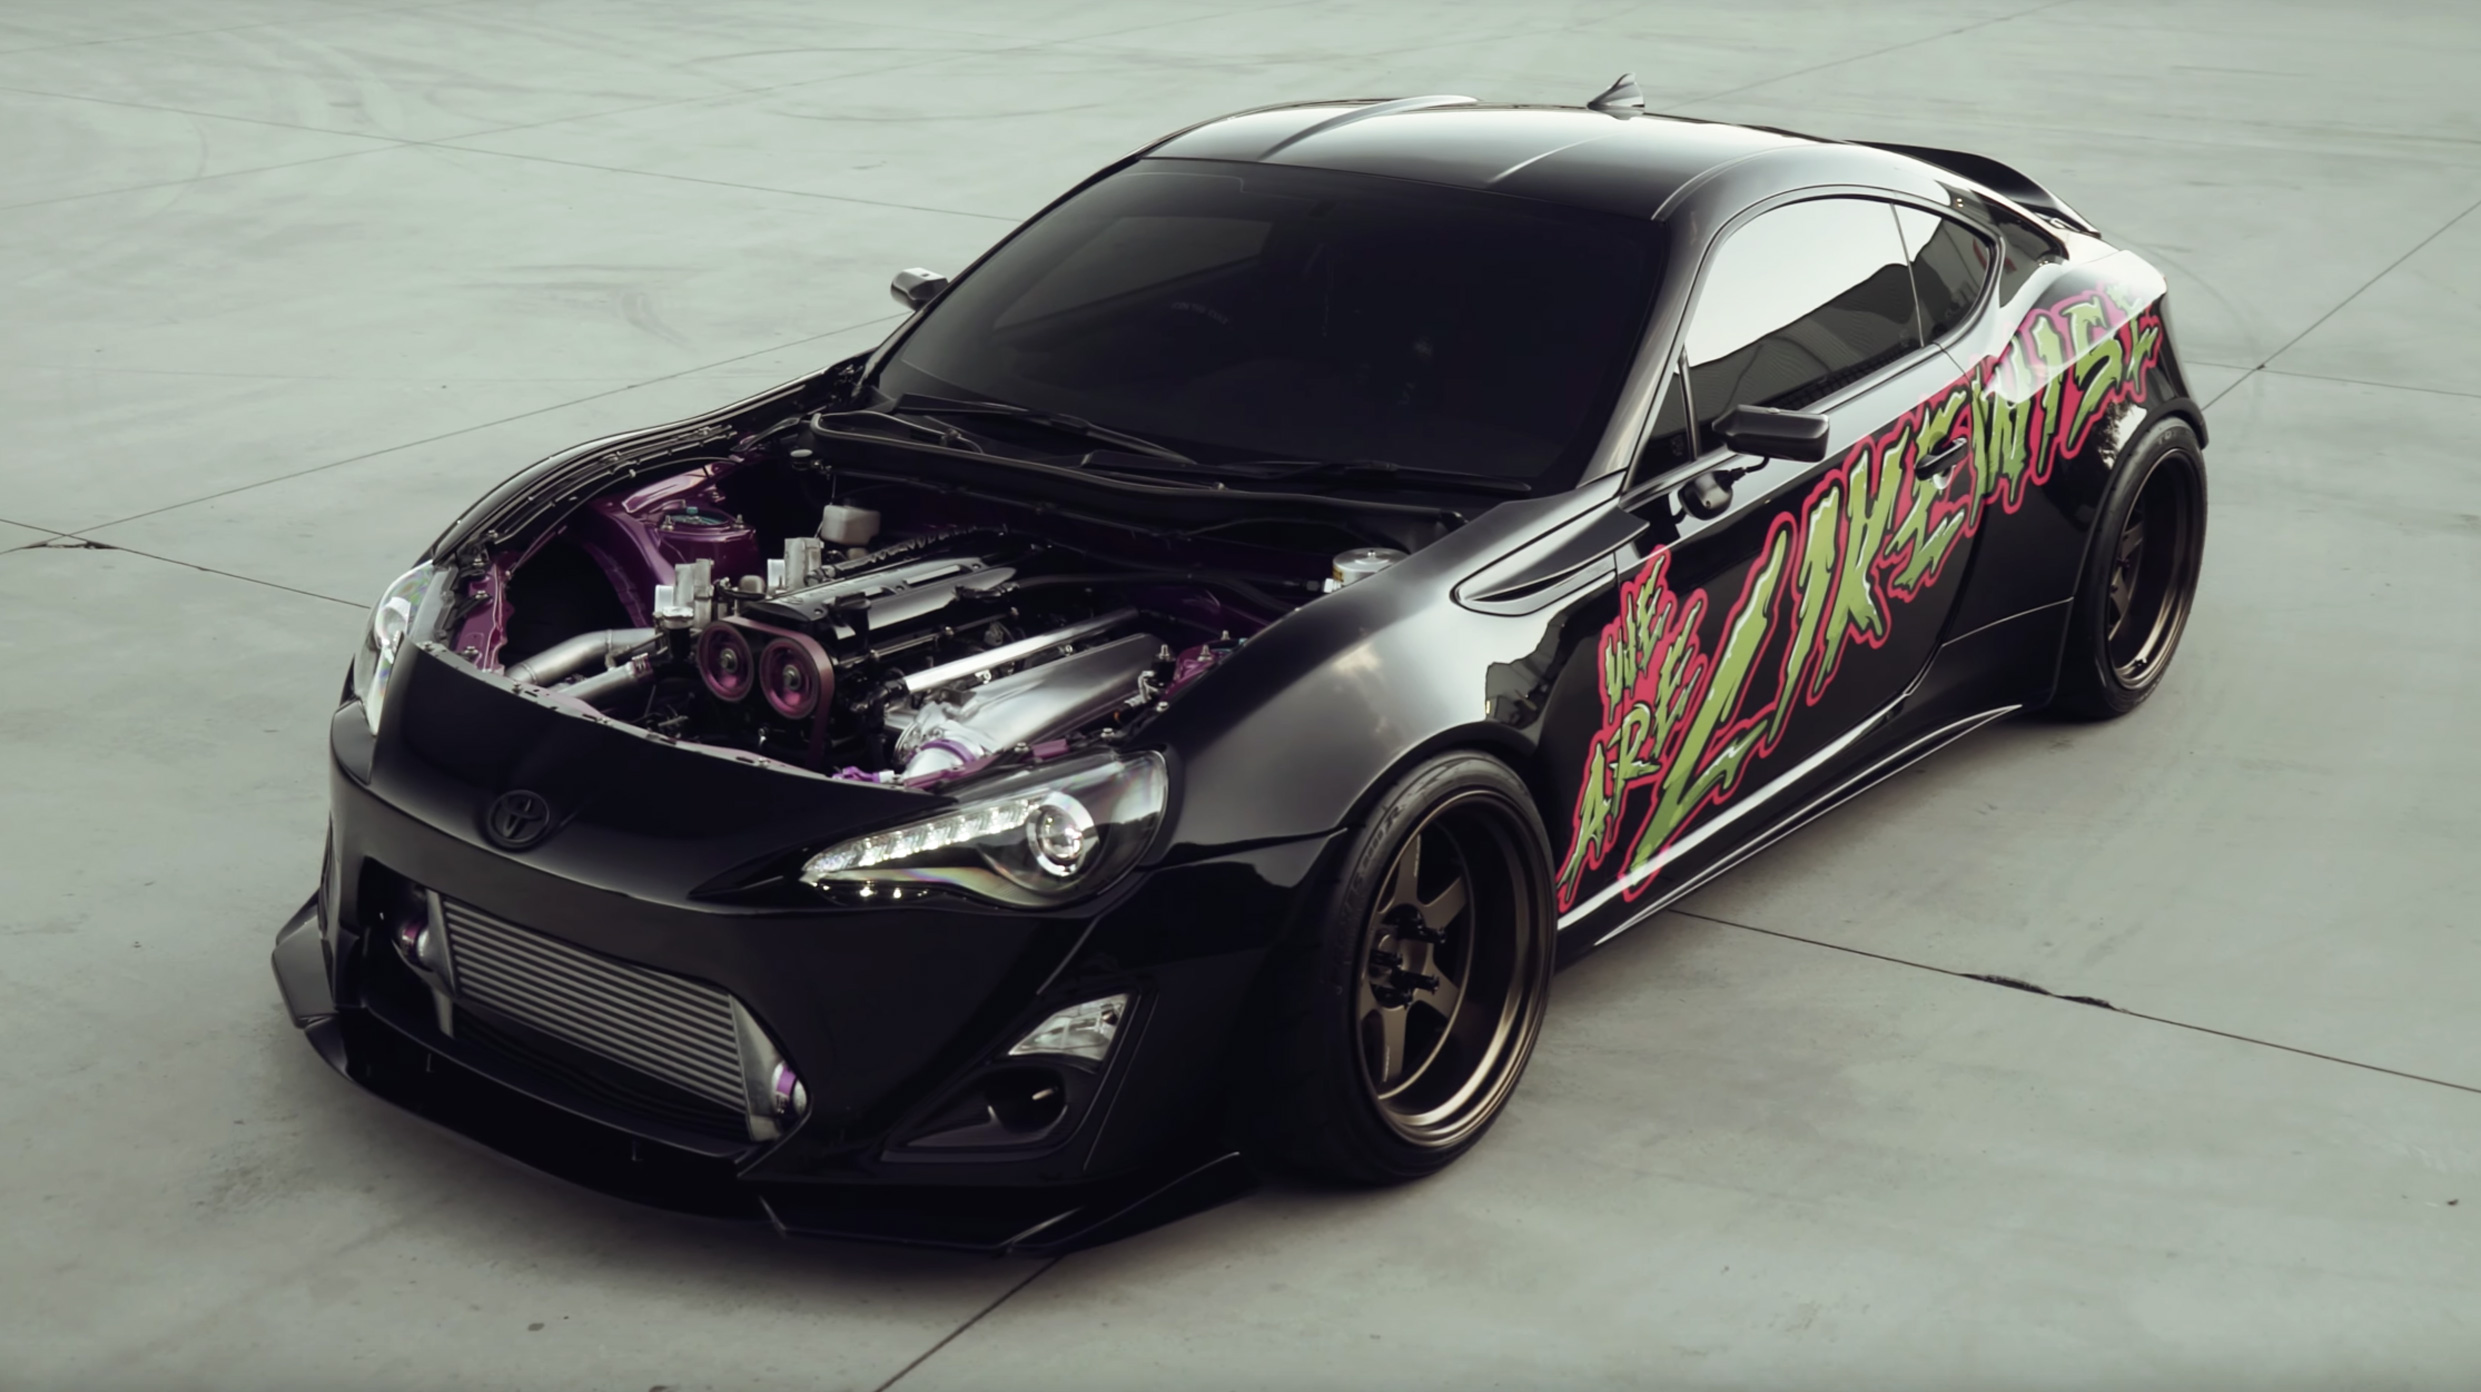 We Are Likewise, Twin Turbo 2JZ Toyota 86